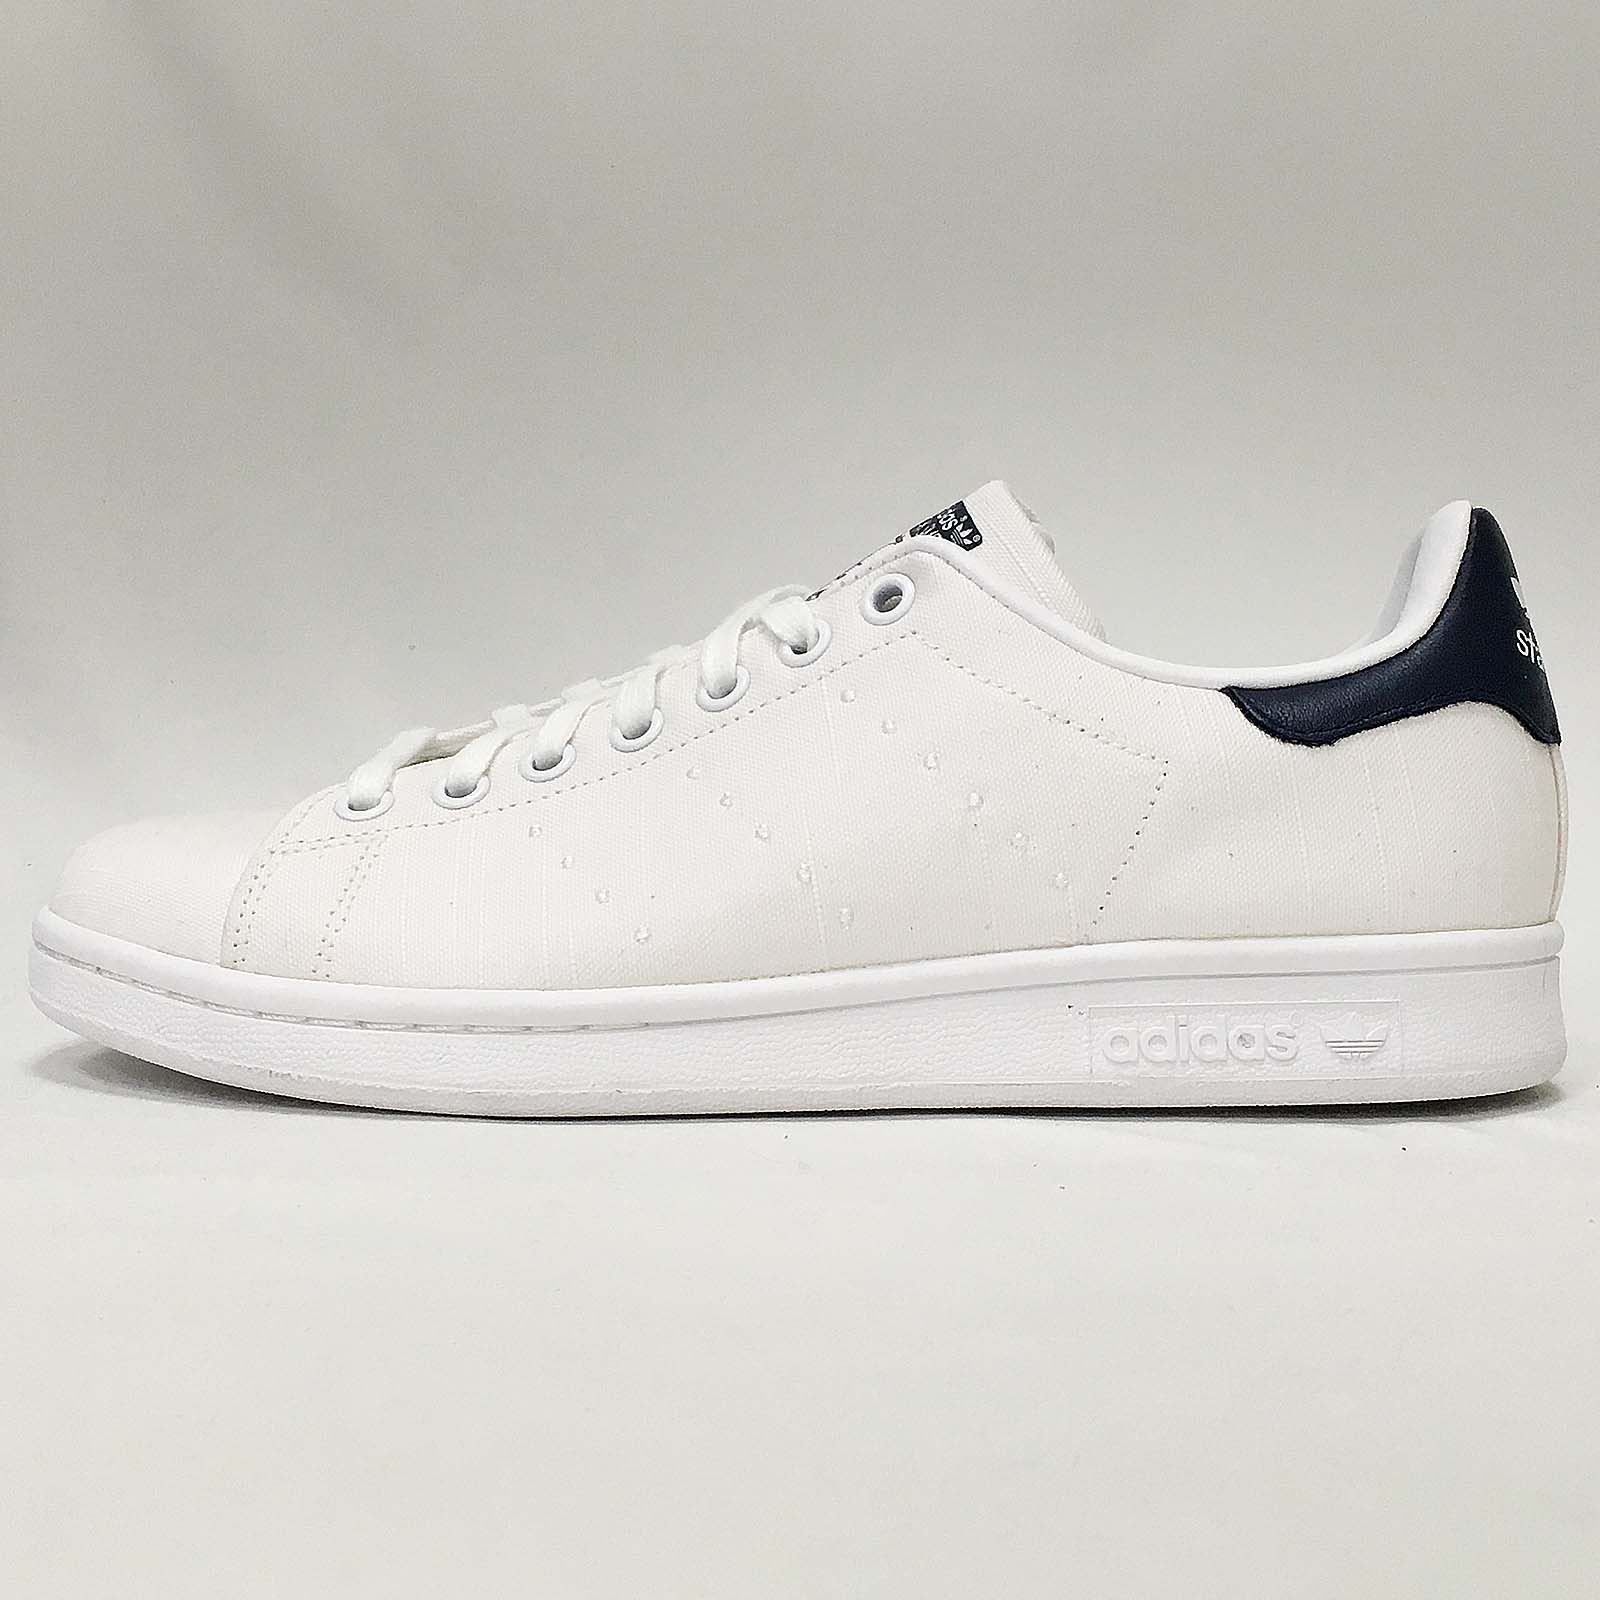 reputable site 842de ad6cd Details about adidas Originals Stan Smith W White Navy Upper With Little  Stain Women S75561